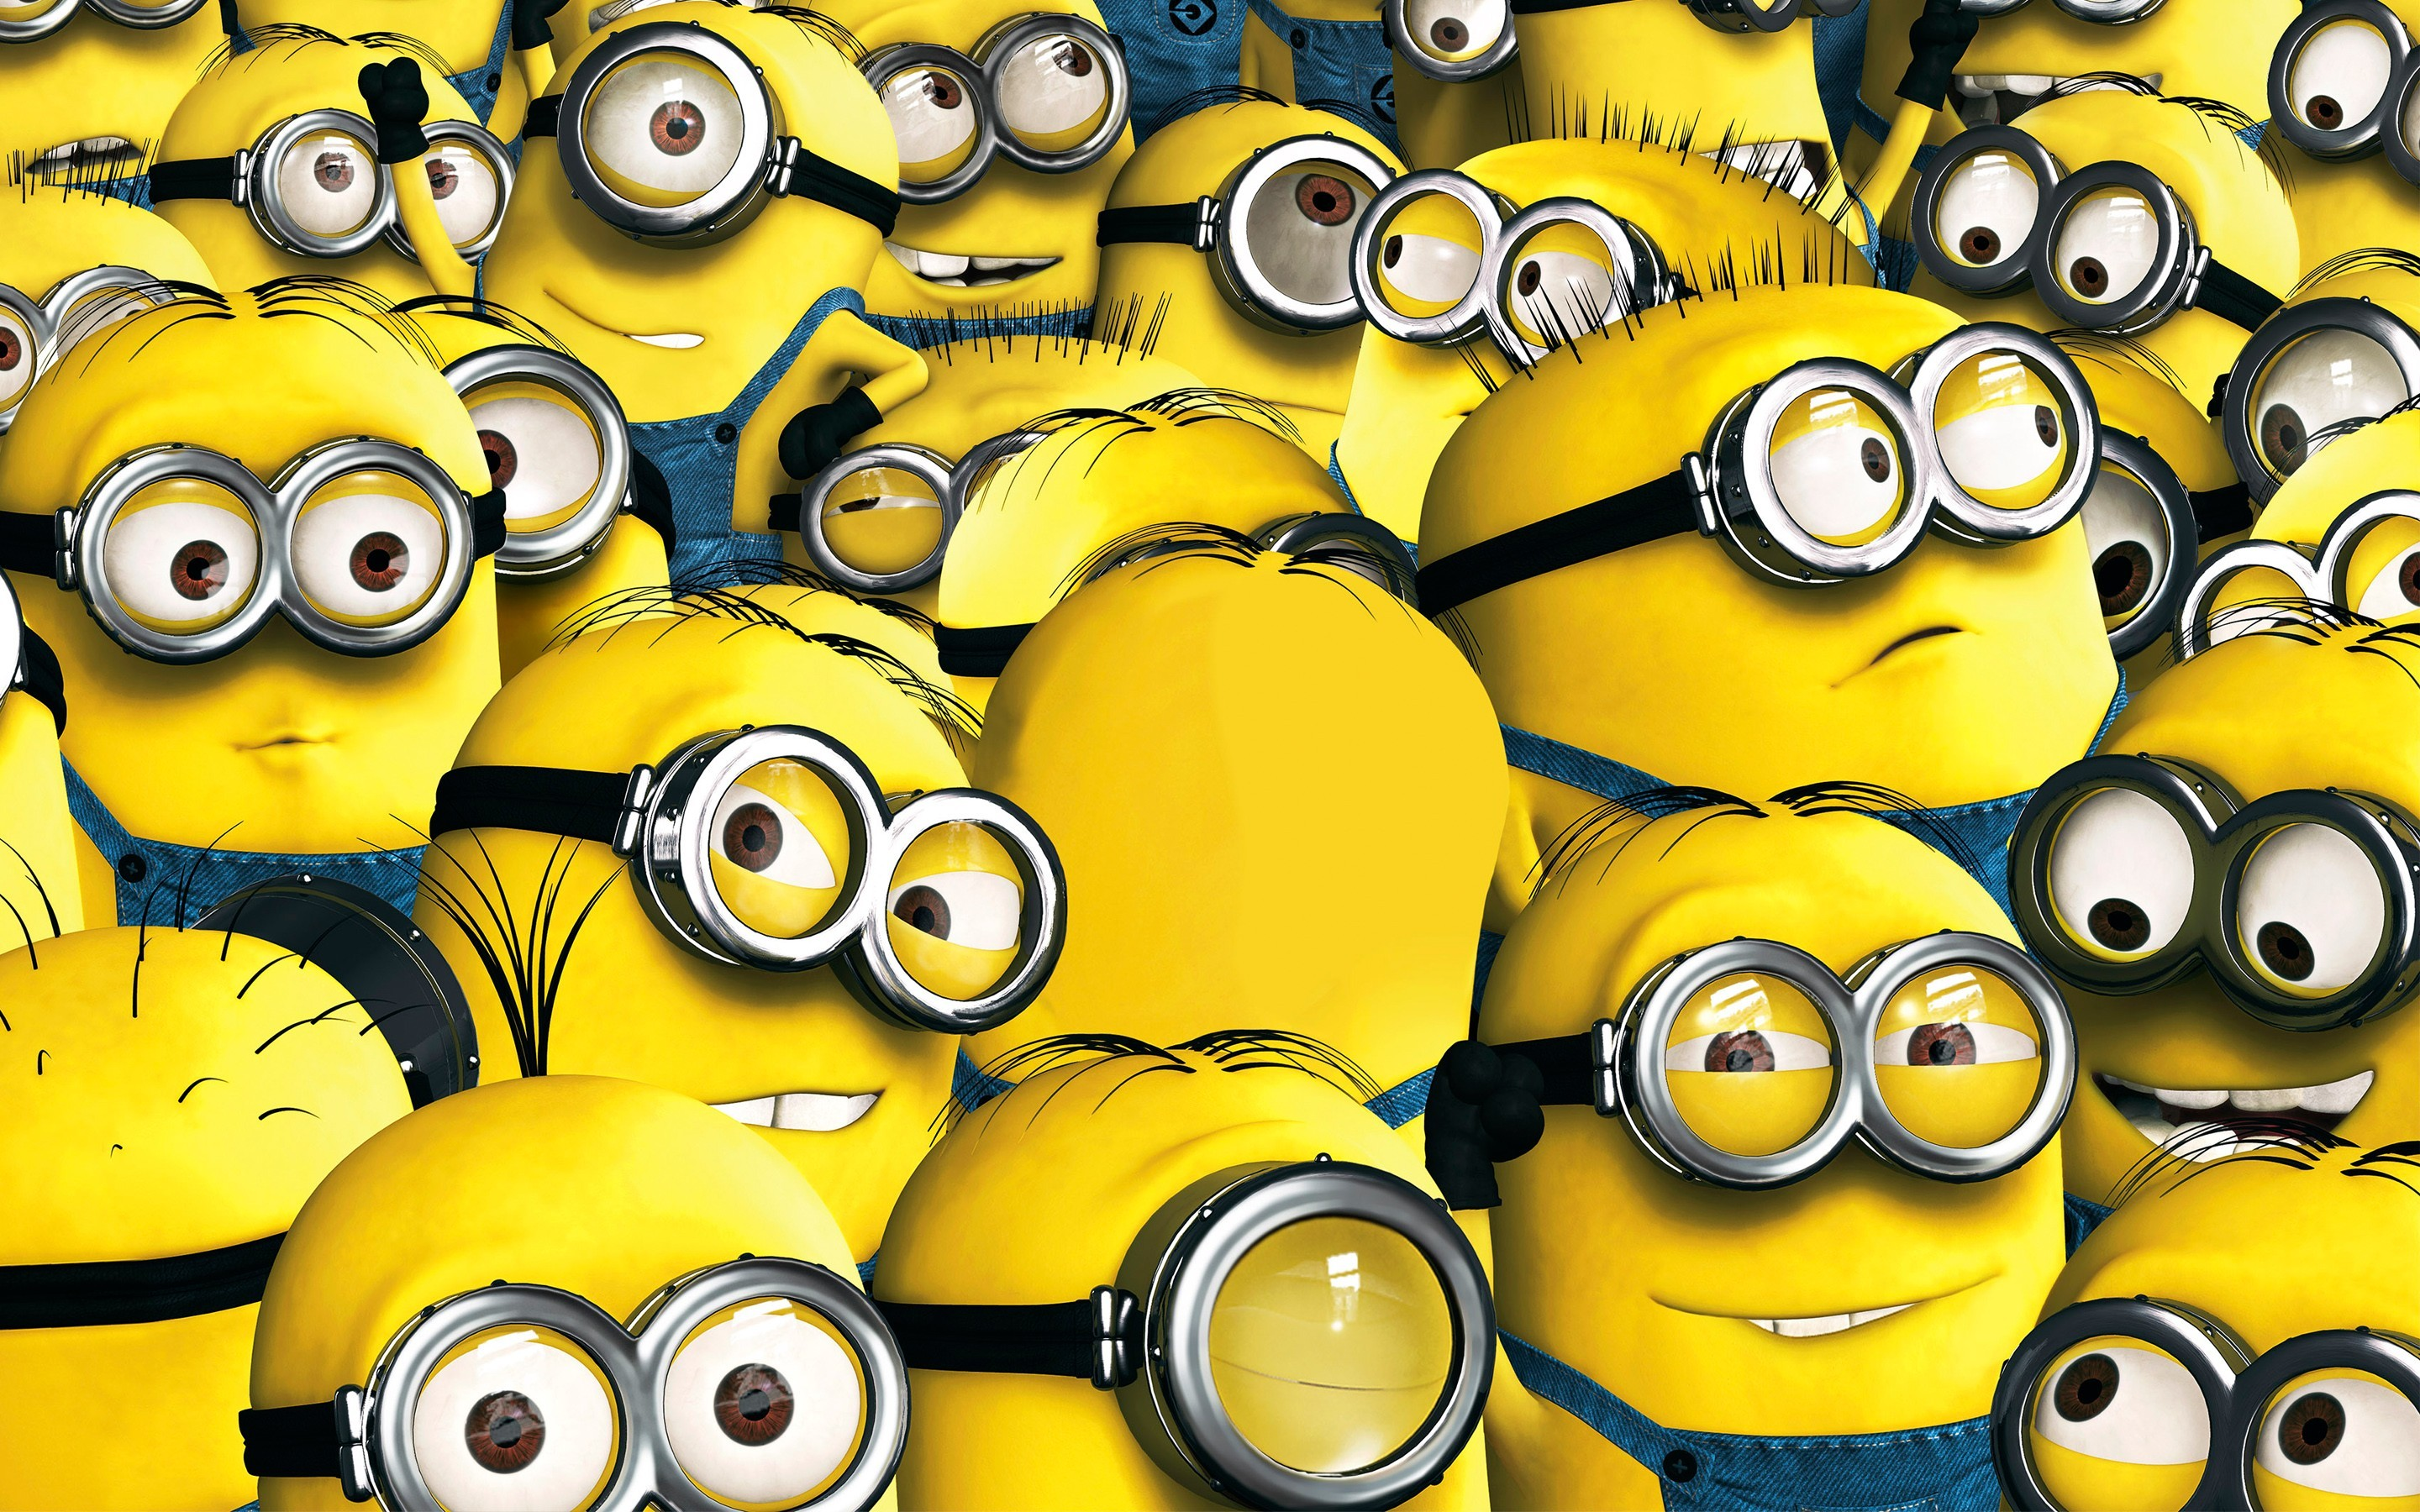 2880x1800 ... download deable me minions hd 4k wallpapers in 2048x1152 ...